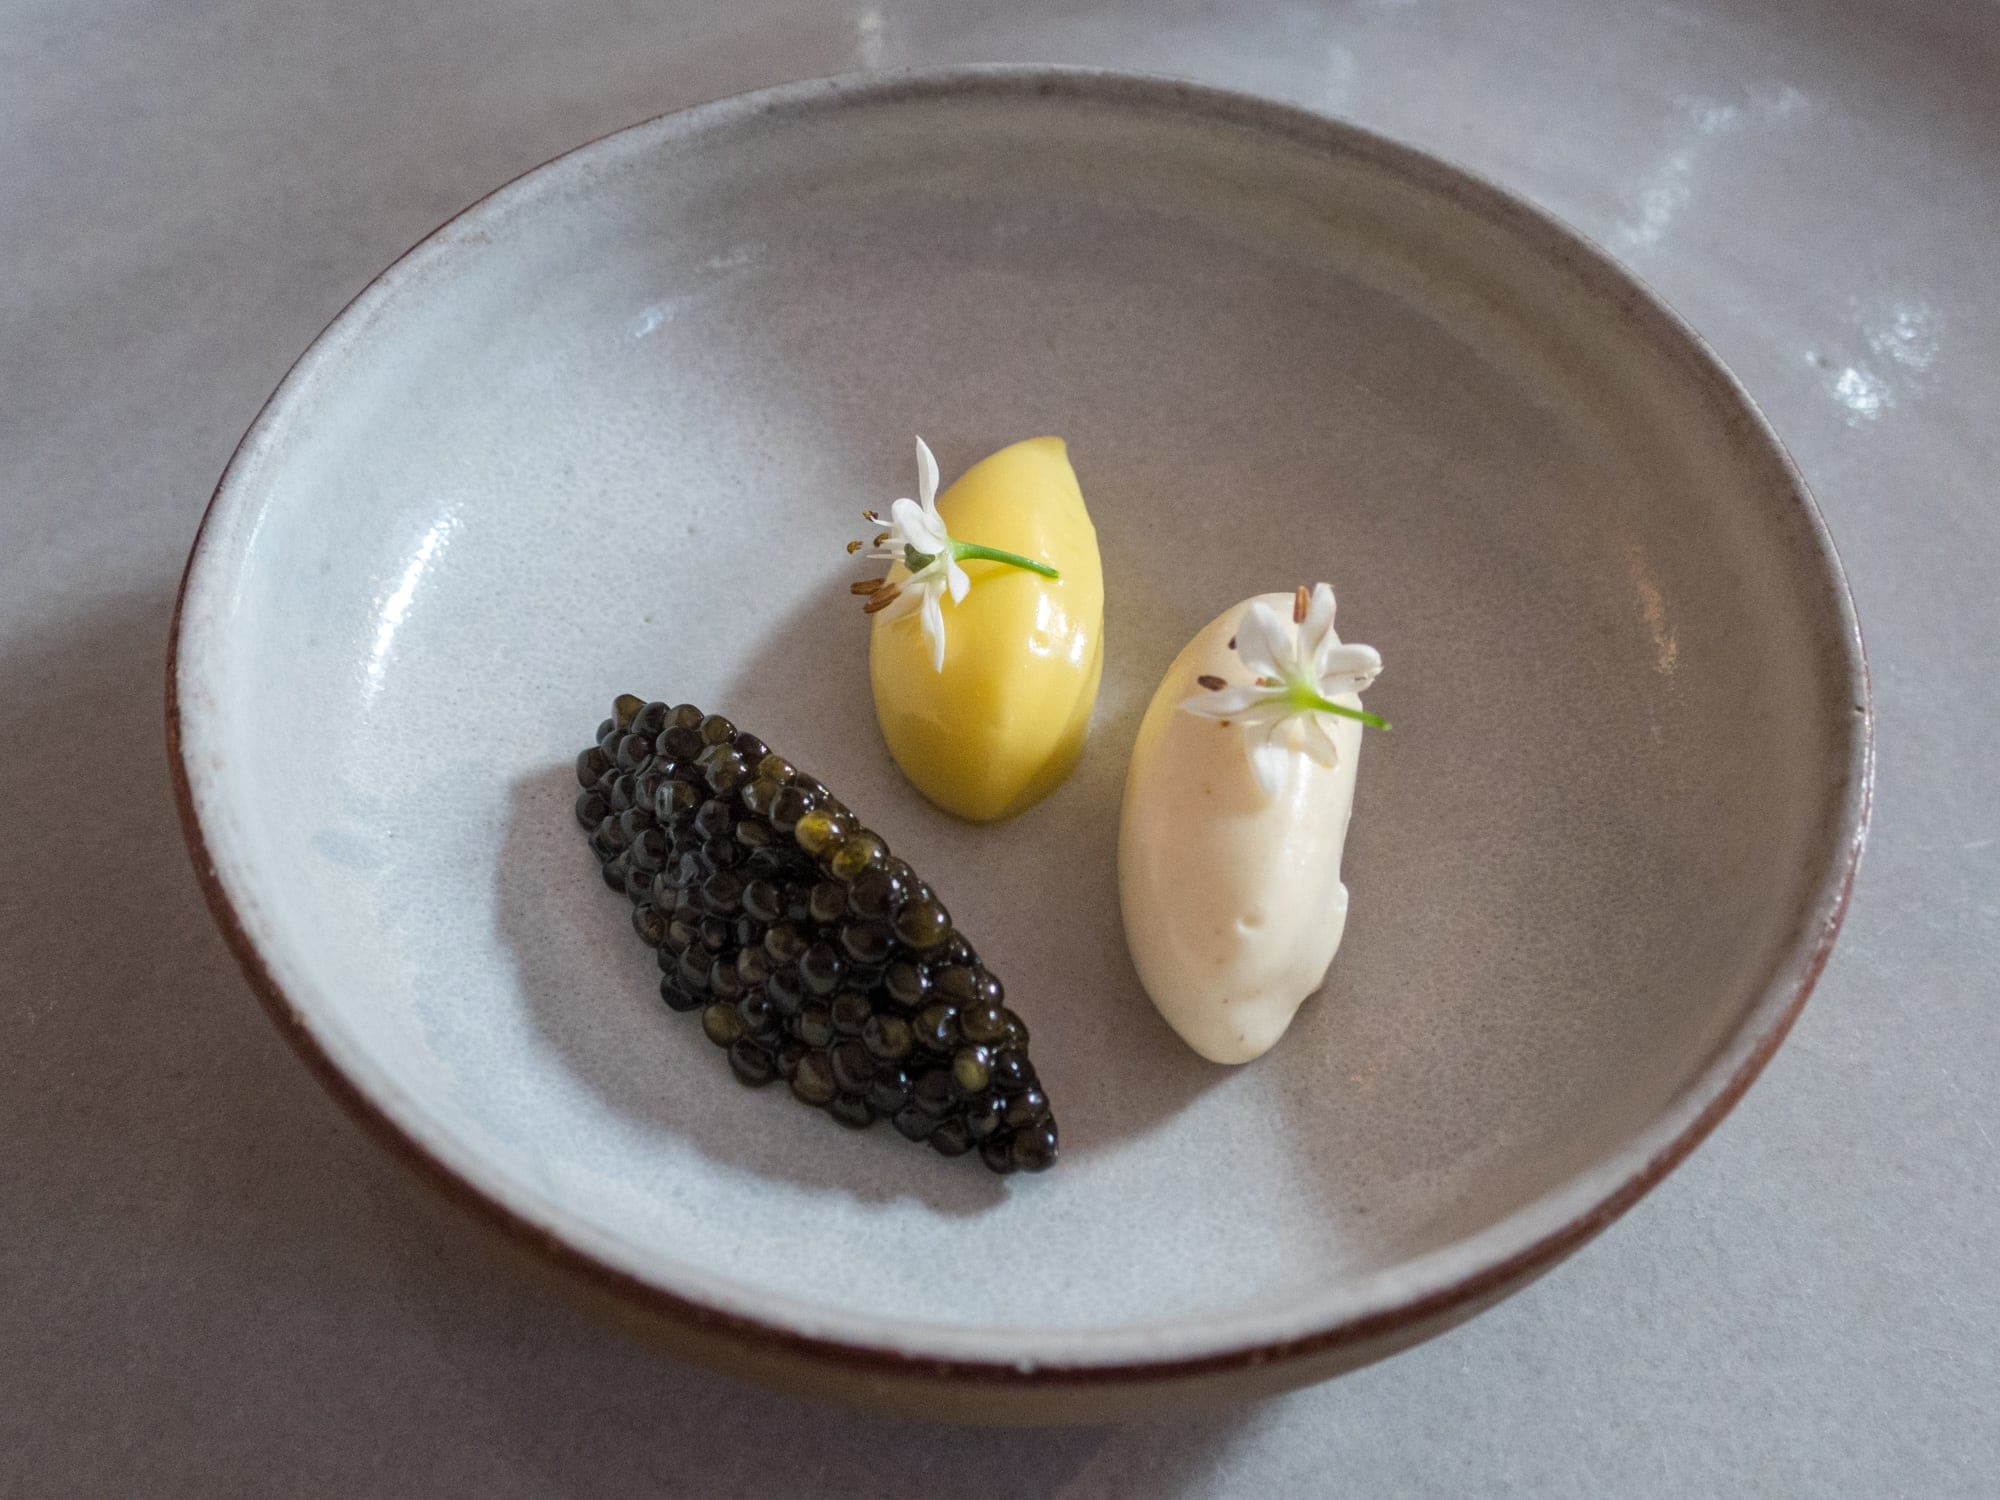 Caviar at Eleven Madison Park, one of the best restaurants in the world